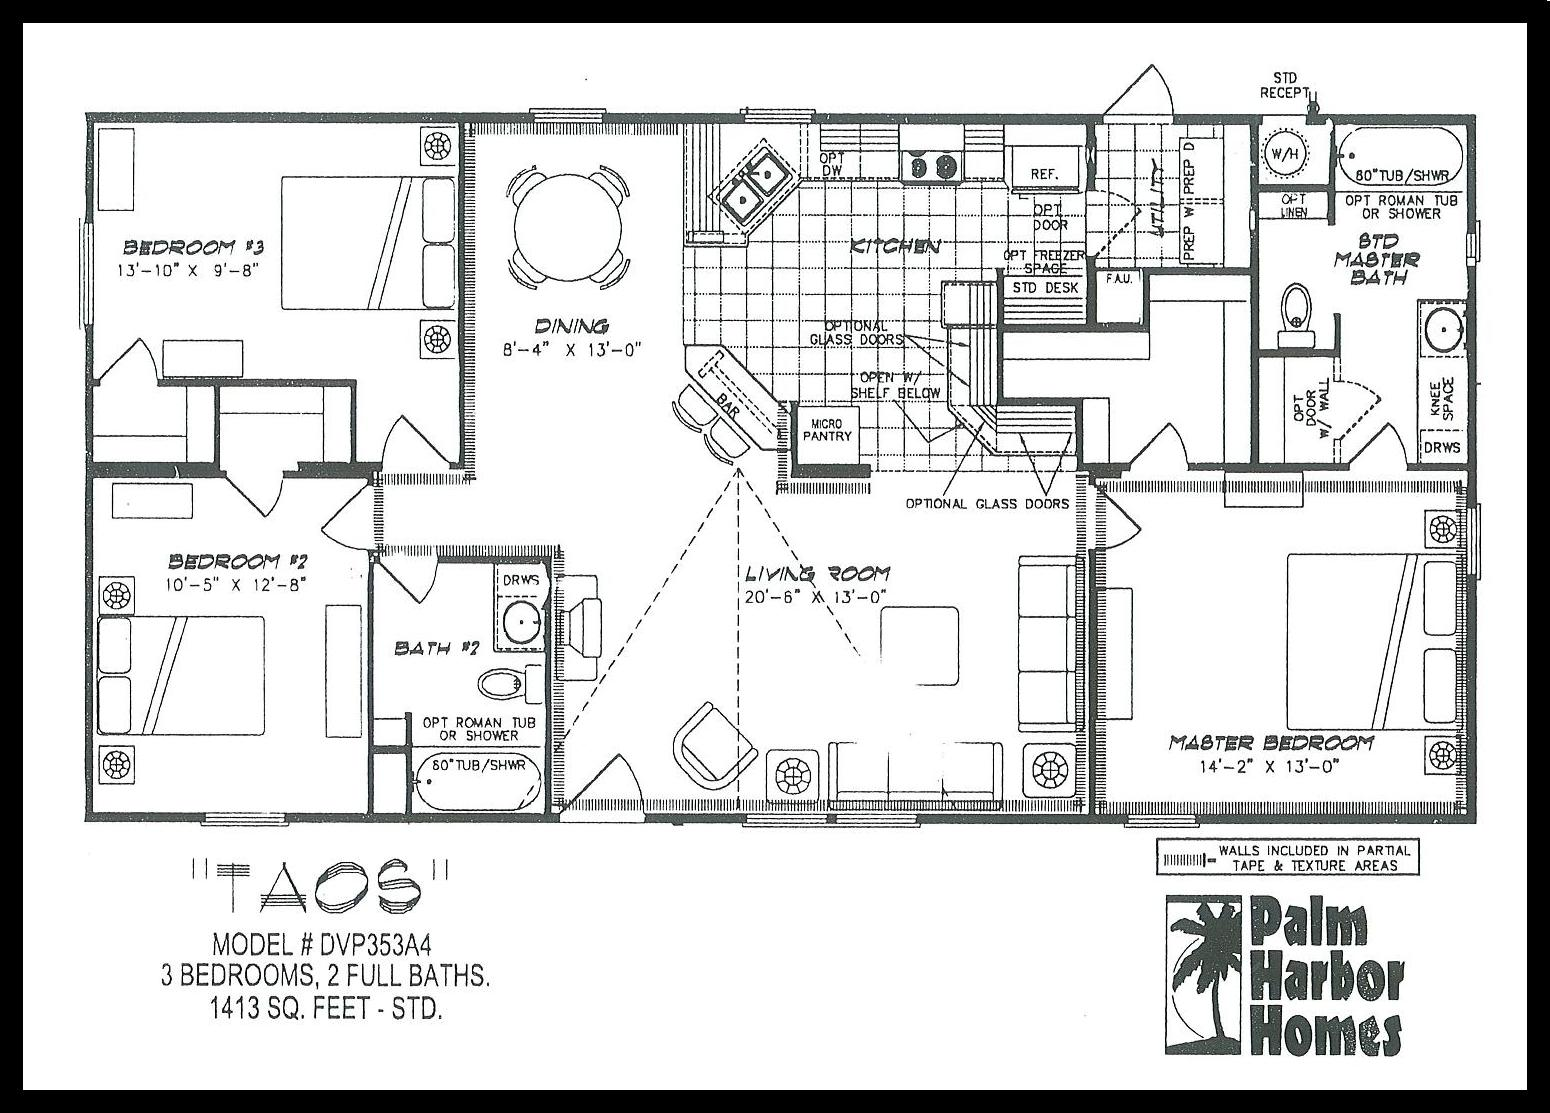 214-FLOORPLAN Palm Harbor Floor Plans Single Wide Mobile Home on double wide trailer floor plans, single story duplex floor plans, friendship mobile homes floor plans, park model homes floor plans, buccaneer manufactured homes floor plans, single floor house plans, 16x60 mobile homes plans, large single story floor plans, fleetwood mobile home plans, single wide mobile log homes, single wide trailer layouts, oak creek mobile homes floor plans, single wide floor plans and prices, solitaire single wide floor plans, fleetwood triple wide floor plans, vintage single wide floor plans, 1.5 story floor plans, clayton mobile homes floor plans, single wide mobile homes 18 ft wide,